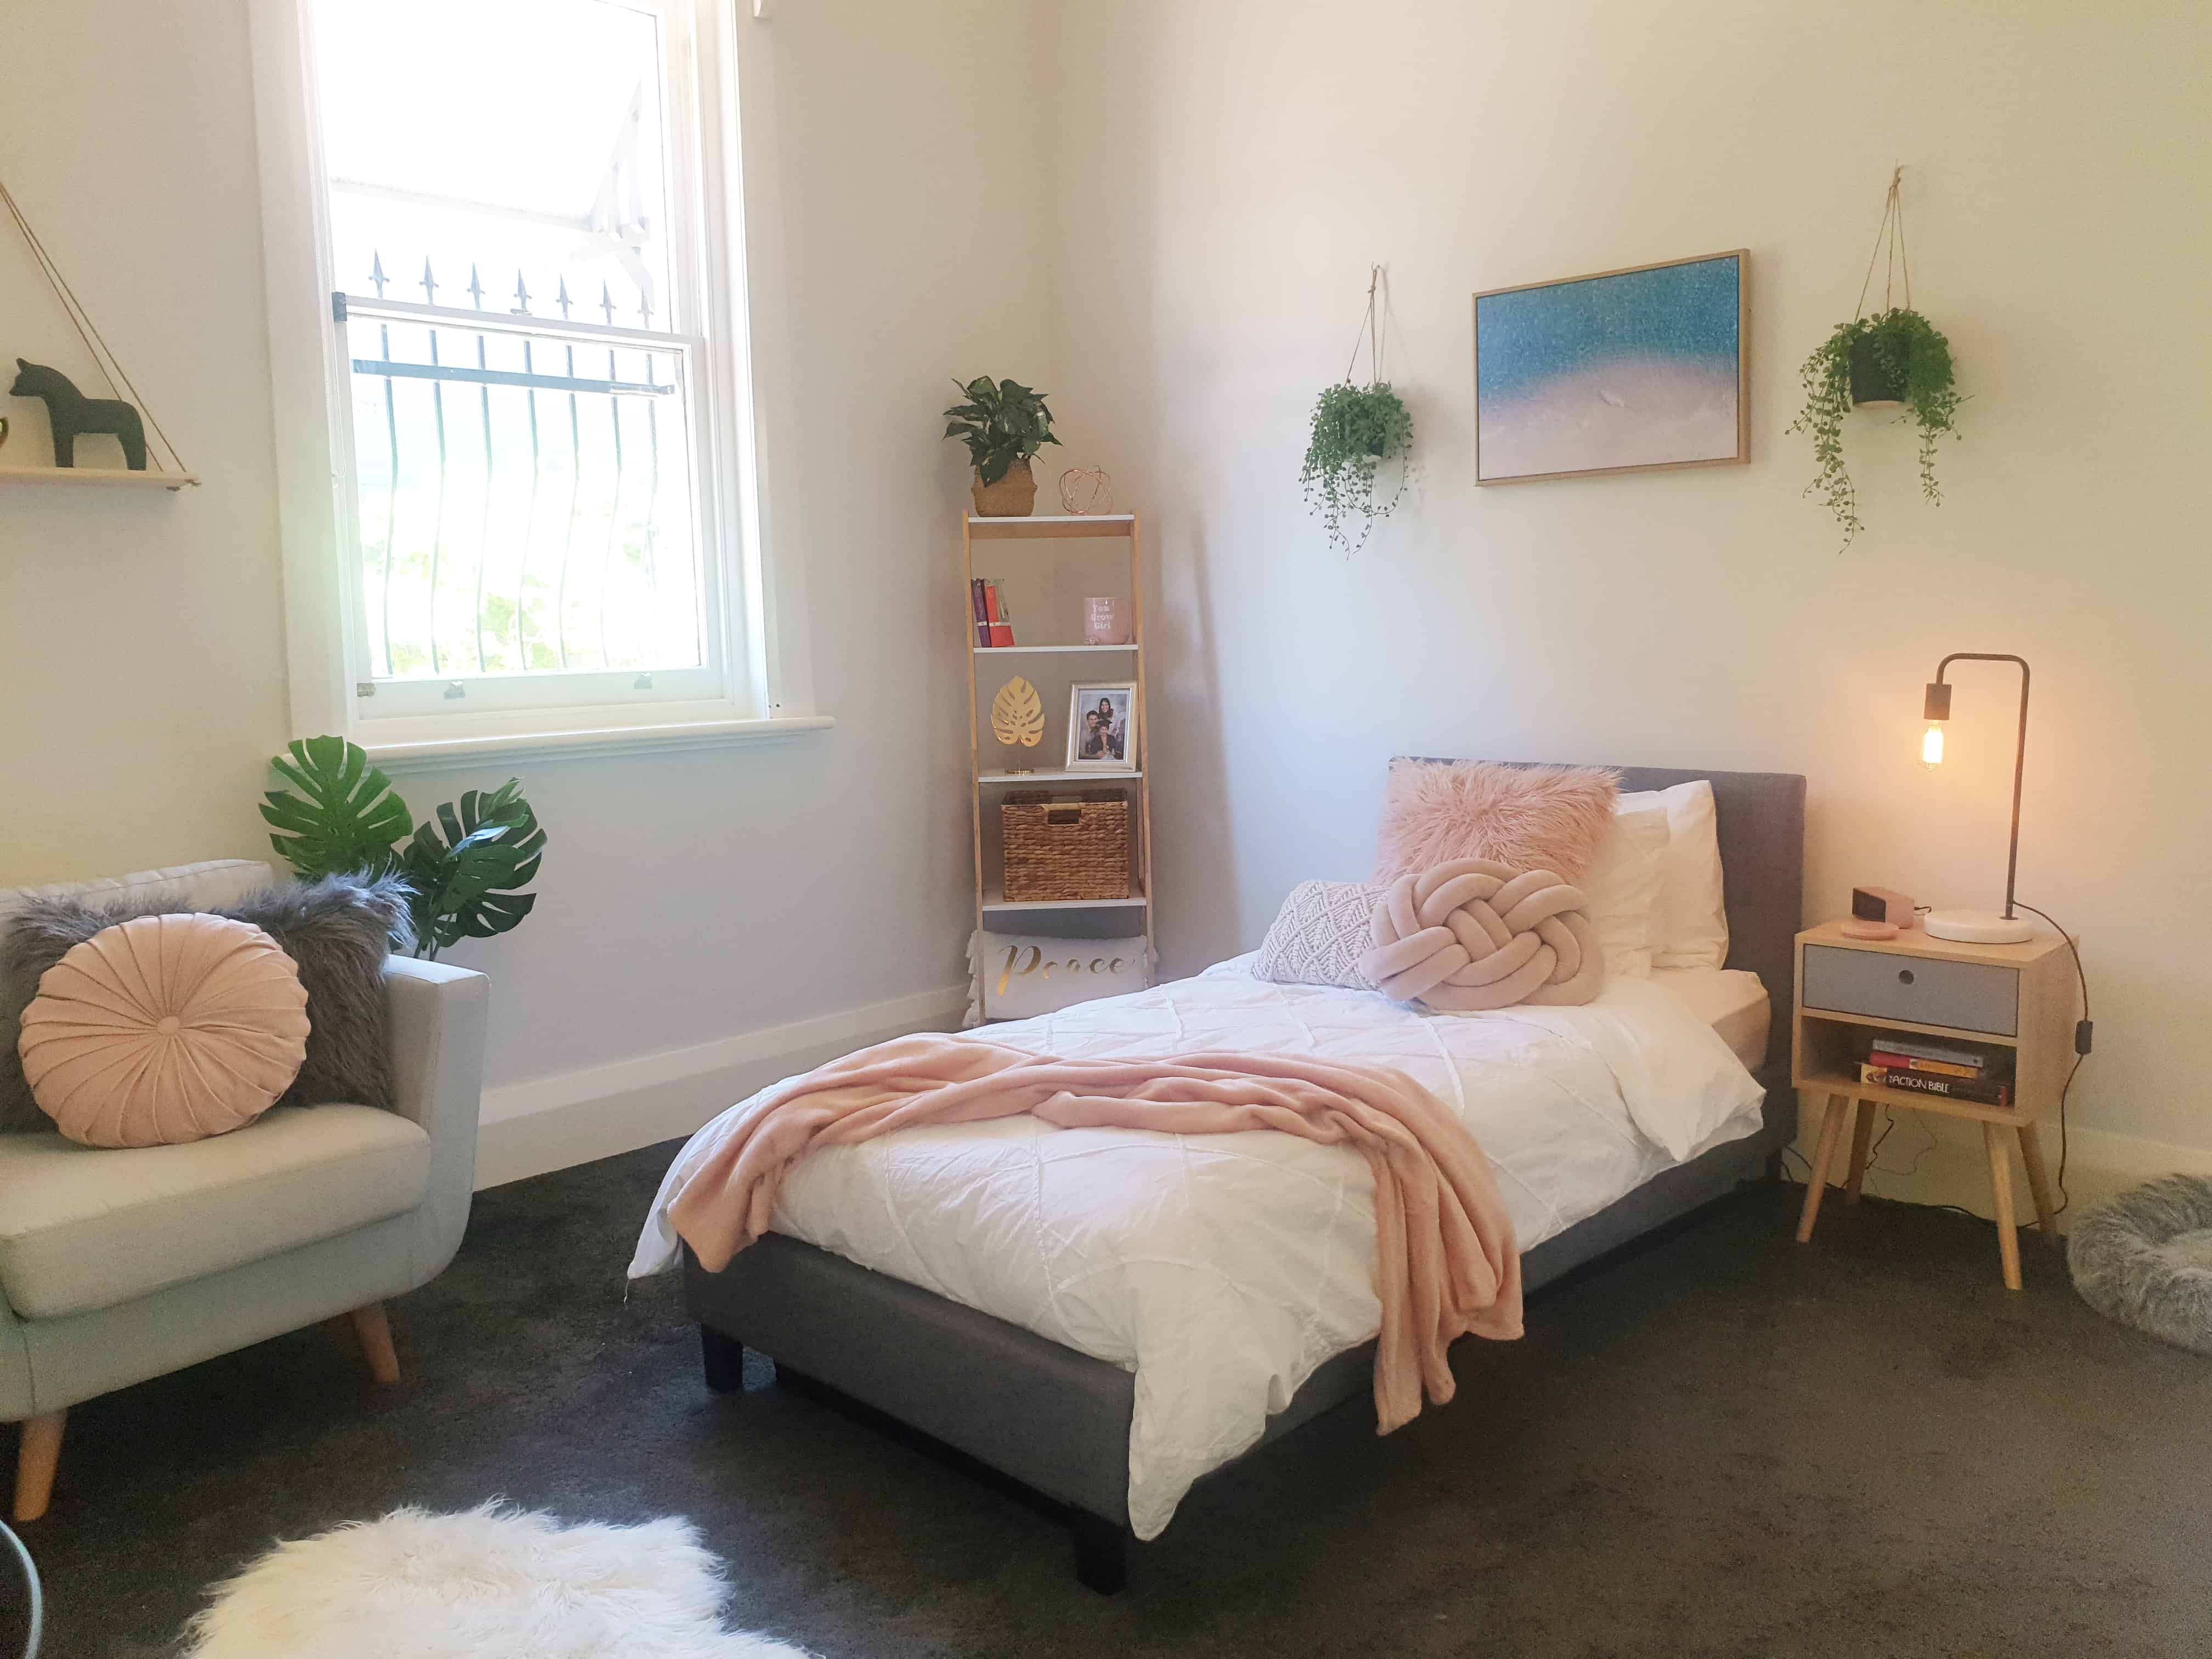 DIY bedroom makeover - whole room view of bed, bookshelf and chair. Hanging plants and fluffy rug.